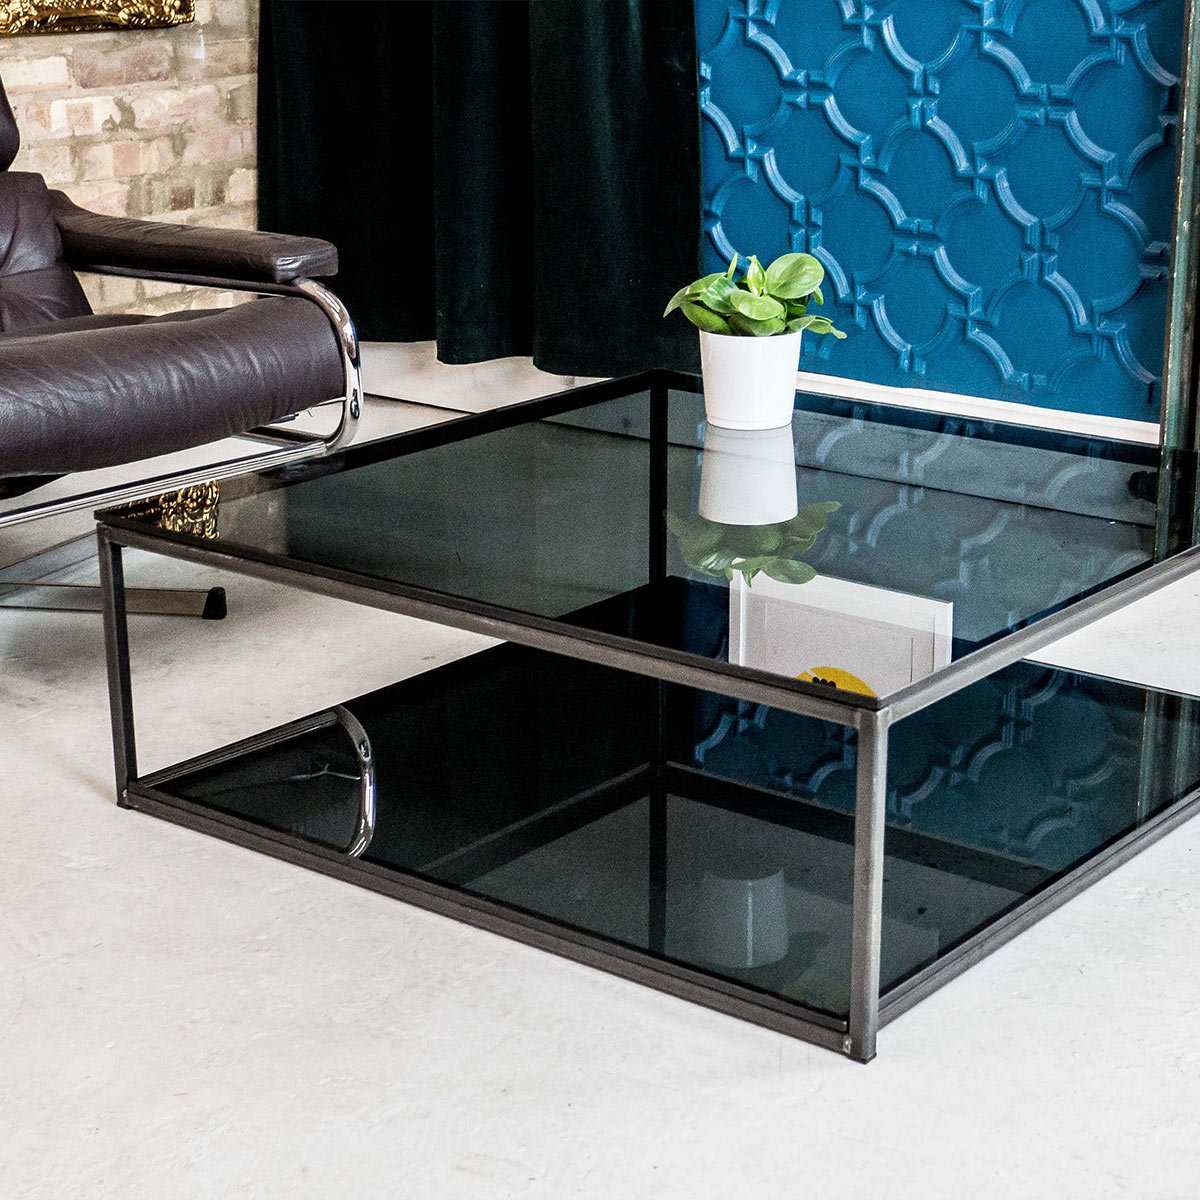 Glass Coffee Tables Furniture Village: Cubic Industrial Glass Coffee Table With Shelf